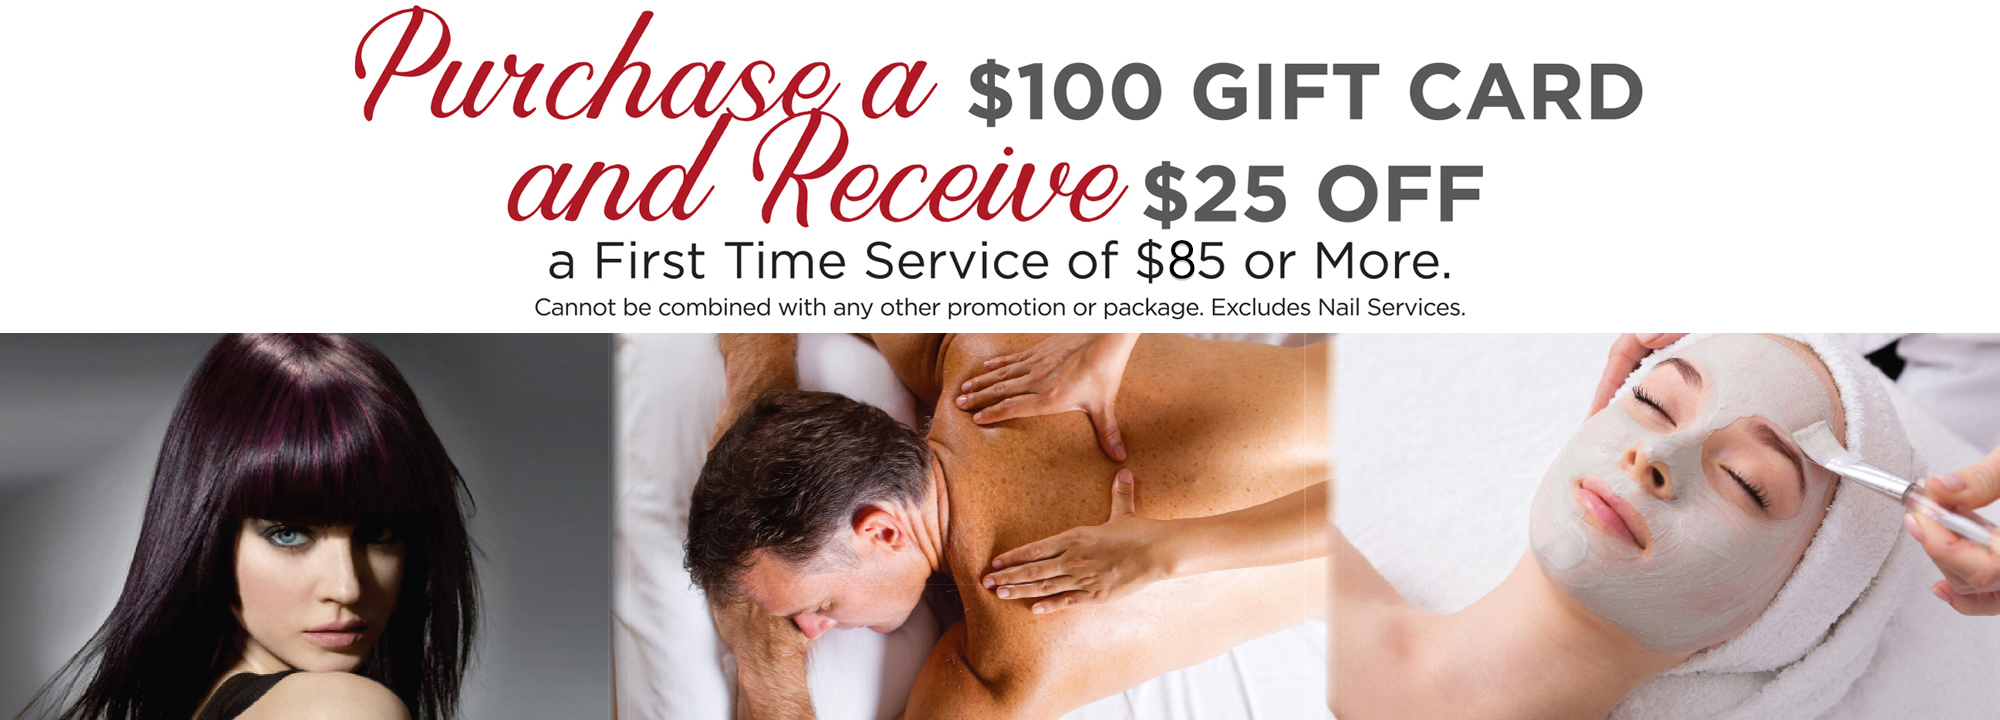 Purchase a $100 Gift Card and Receive $25 Off